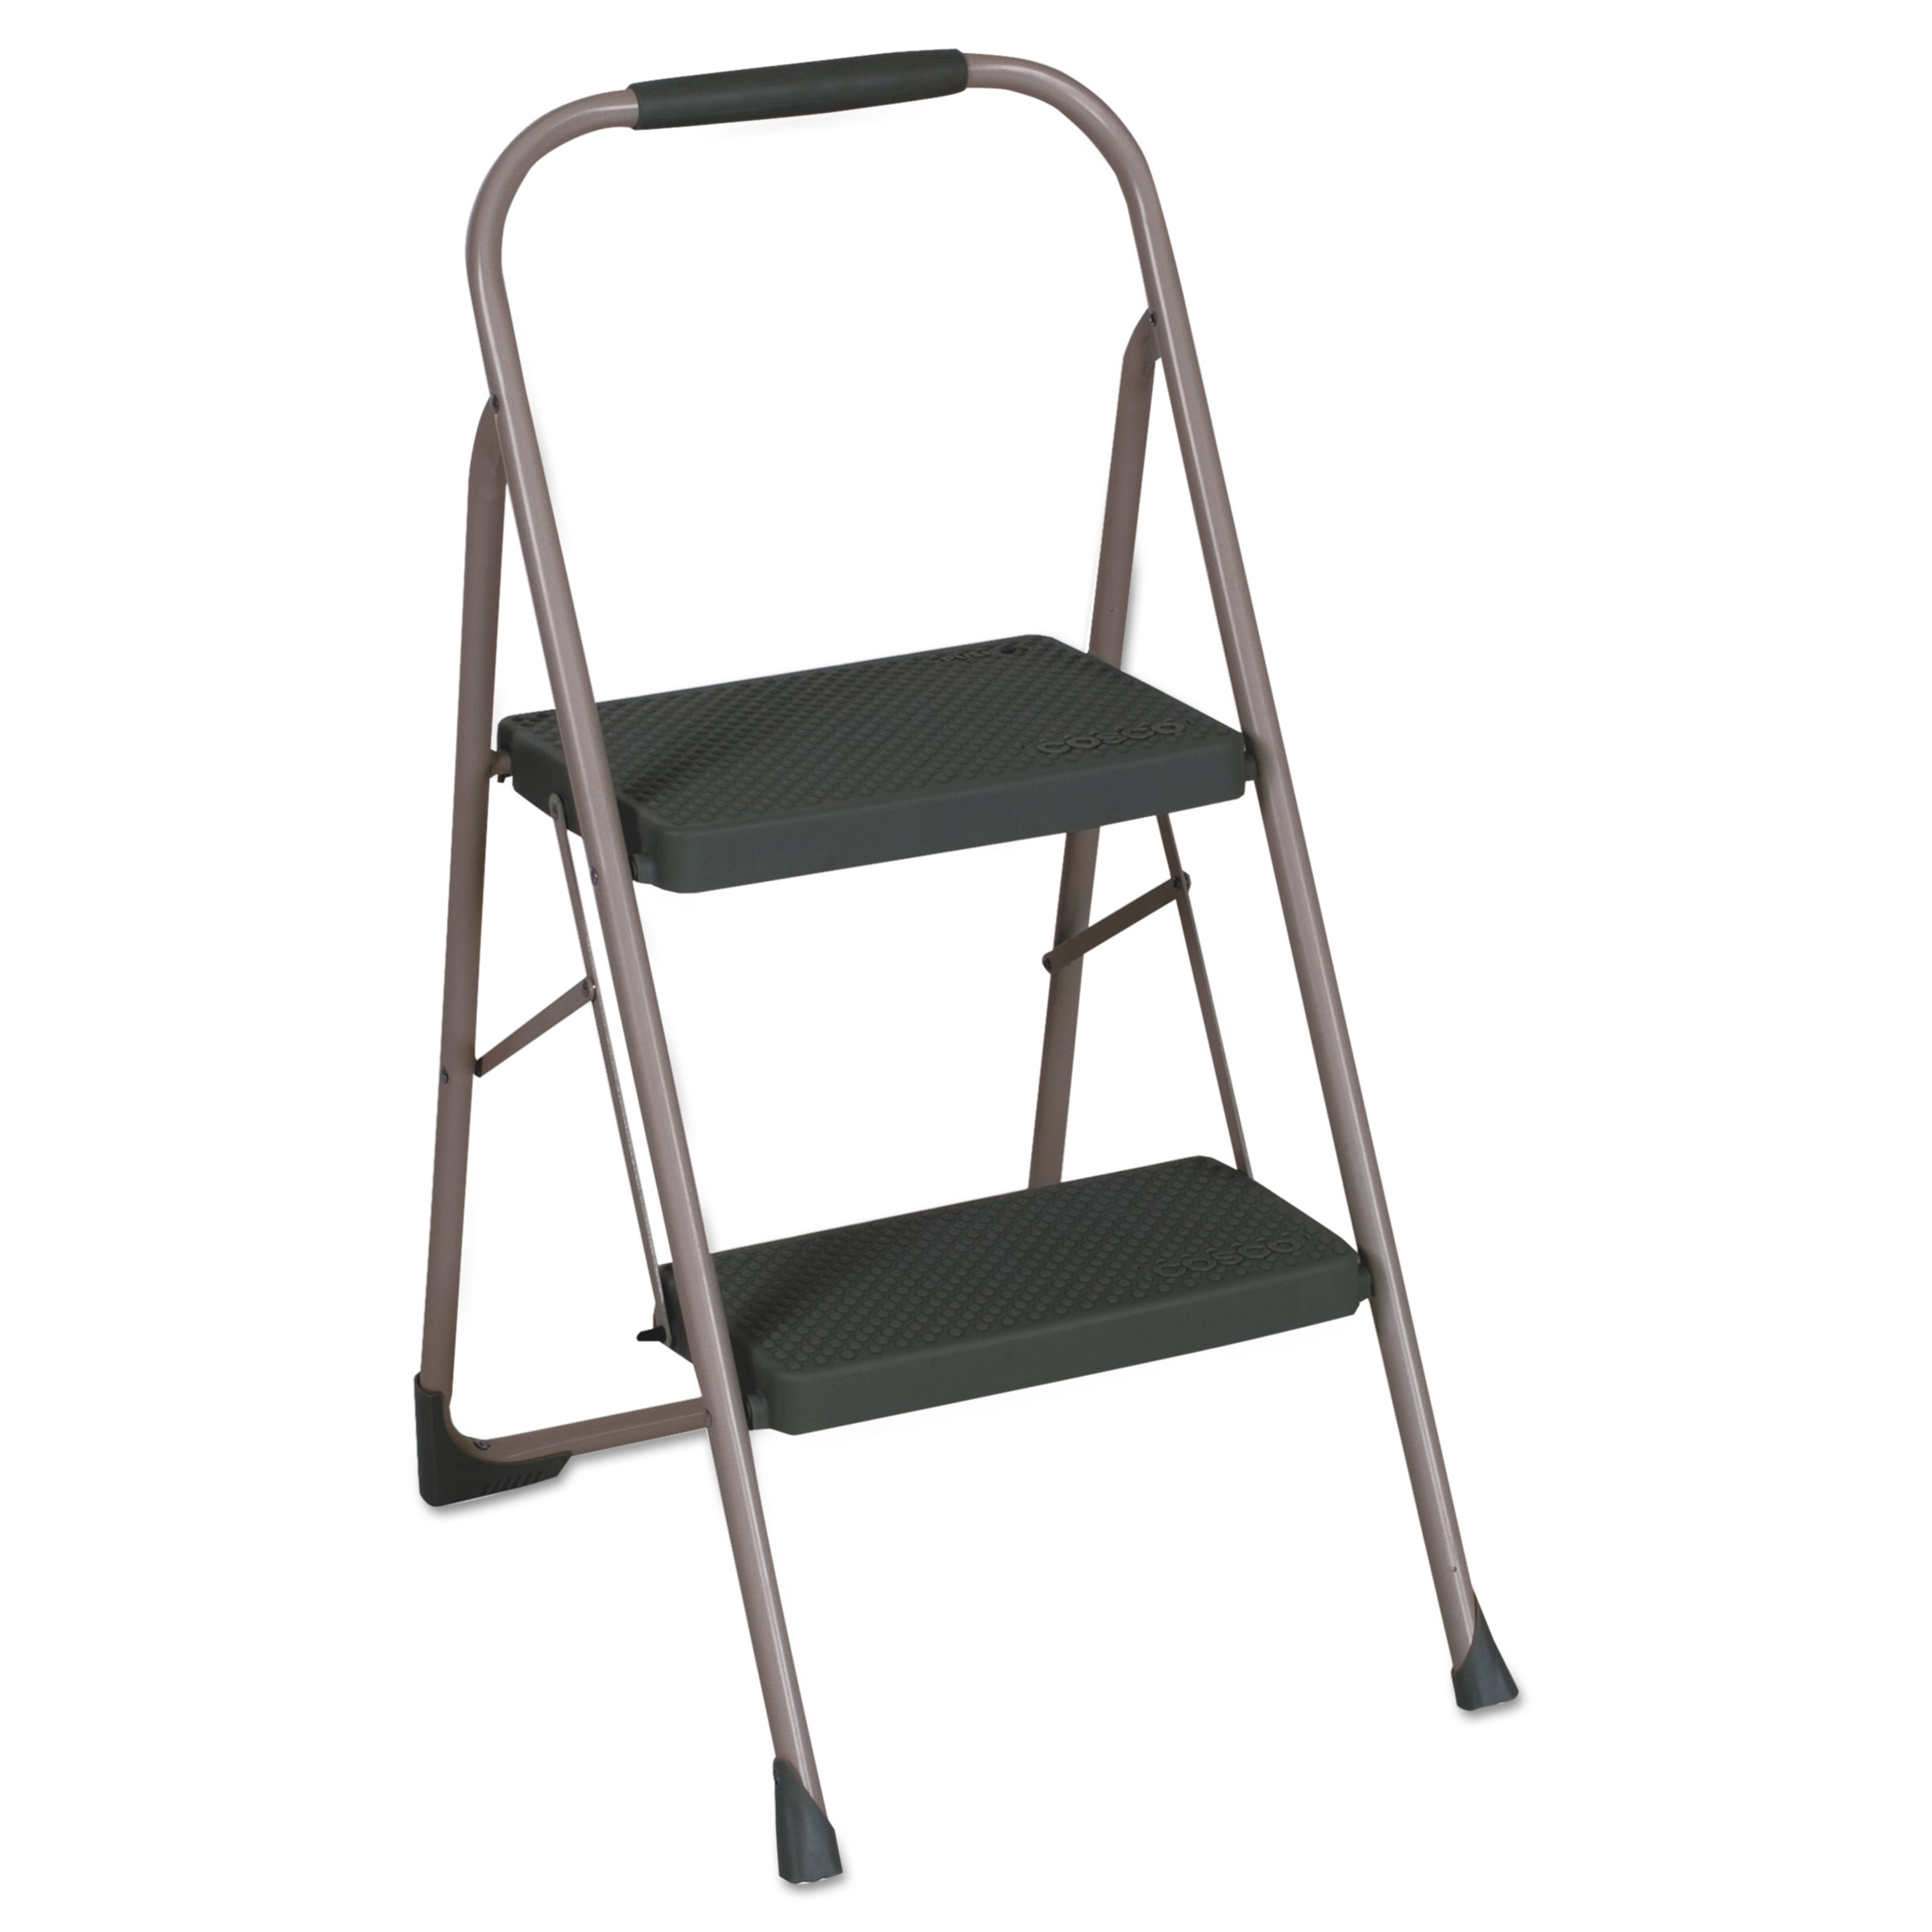 Cosco 2-Step Big Step Folding Stool 200lb 22  Spread Black  sc 1 st  Walmart & Step Stools - Walmart.com islam-shia.org